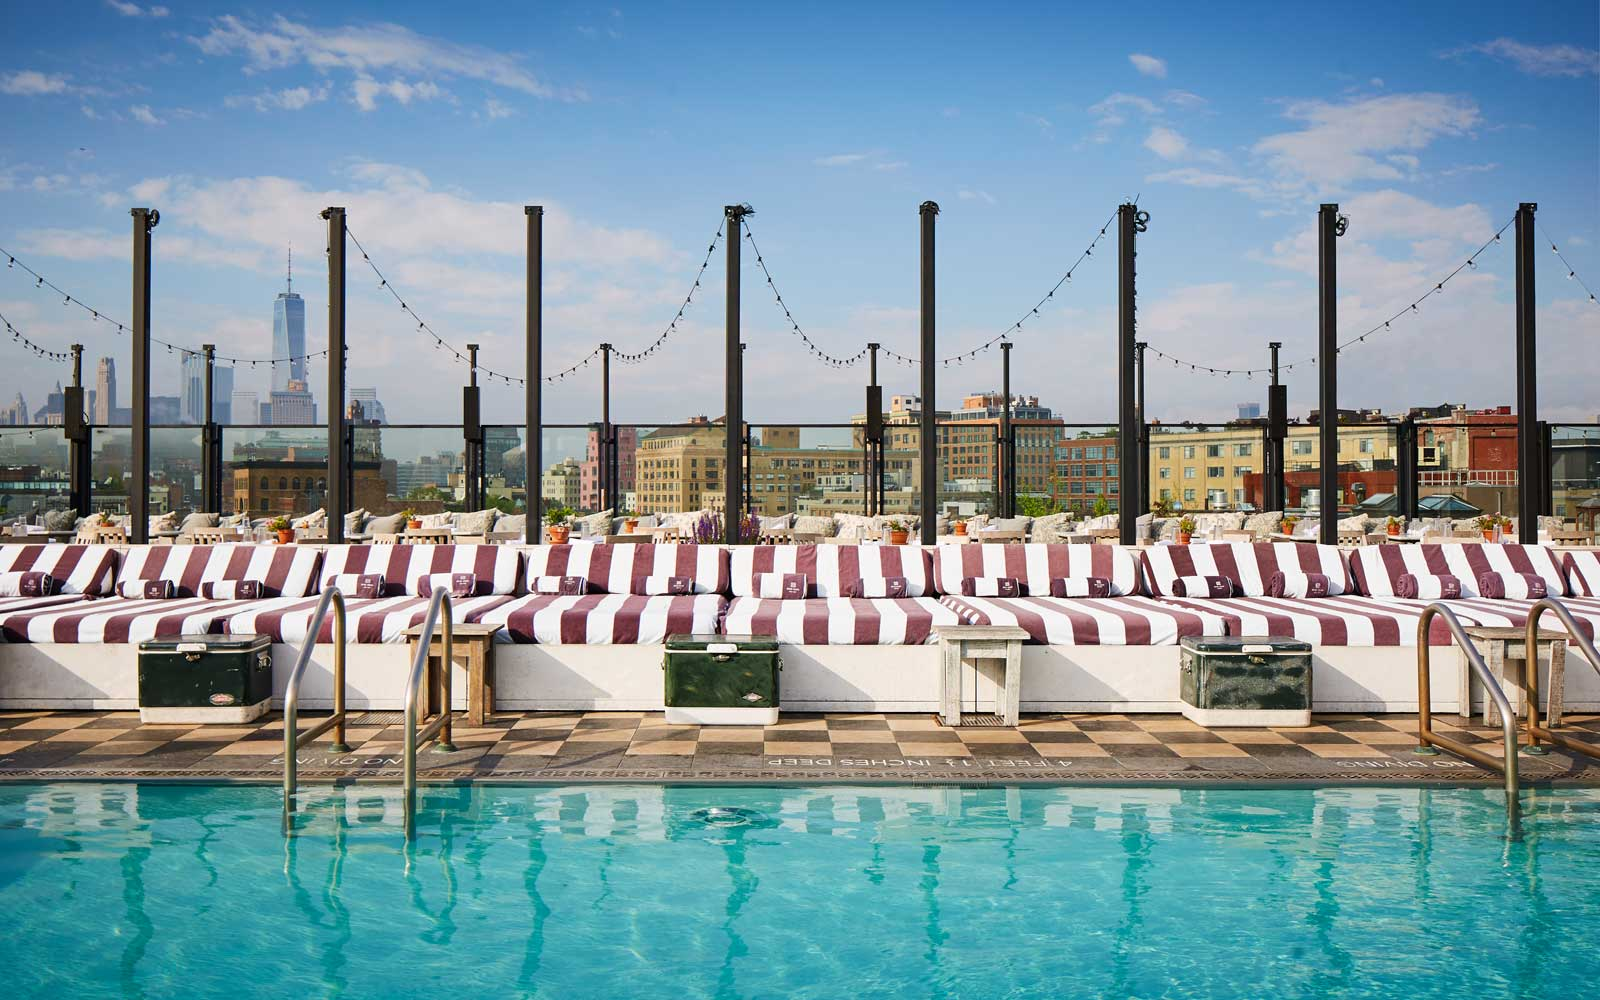 SoHo House, New York, Meatpacking